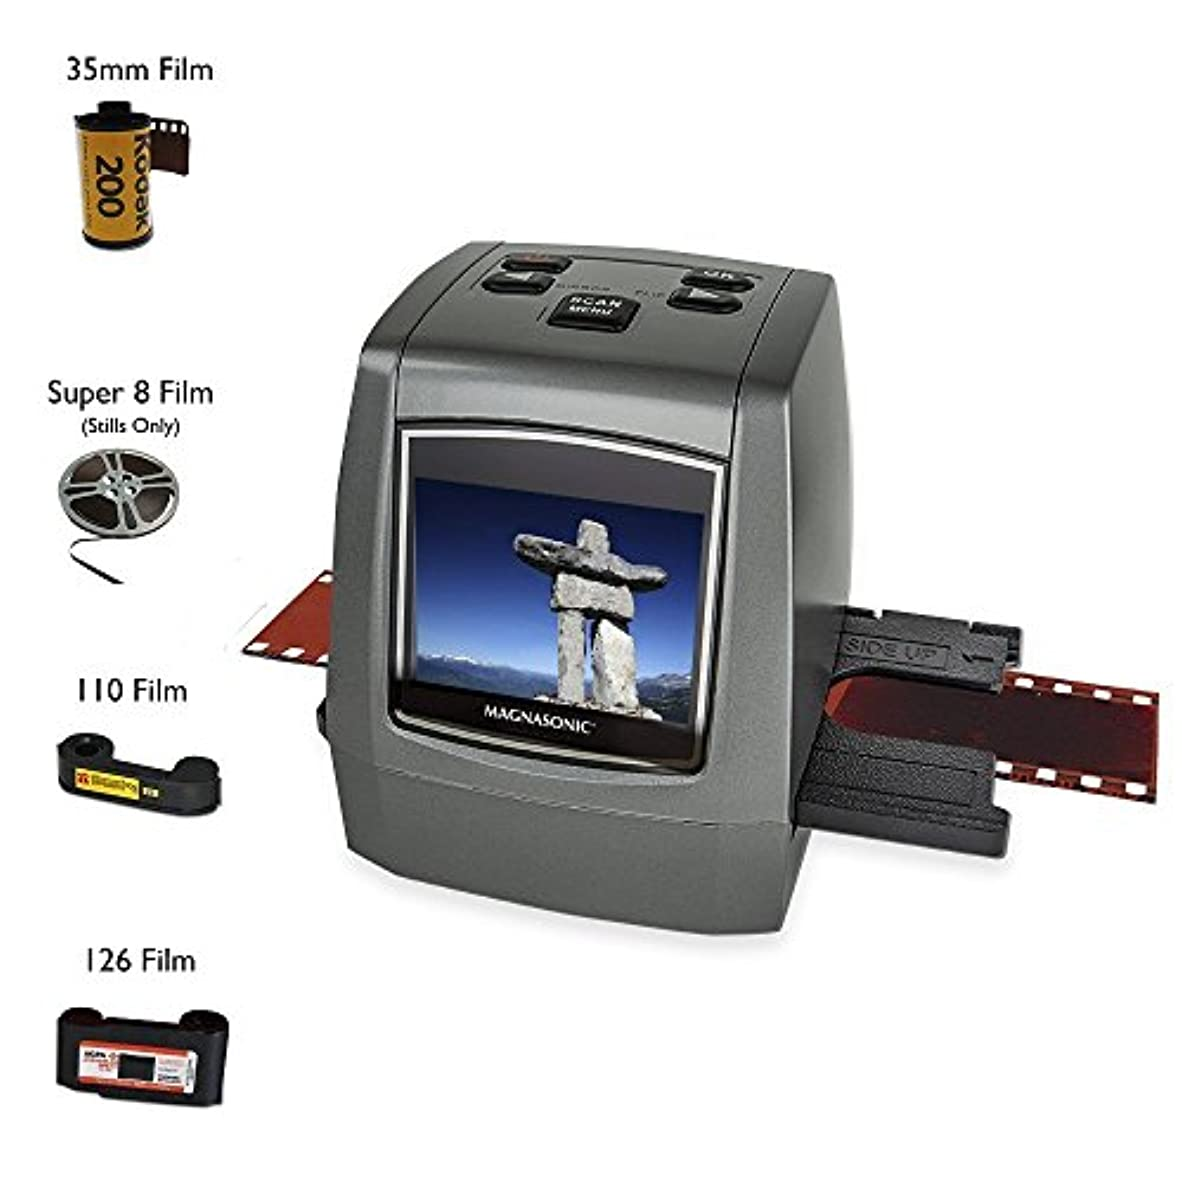 信者実証するおもしろいMagnasonic All-In-One High Resolution 22MP Film Scanner Converts 126KPK/135/110/Super 8 Films Slides Negatives into Digital Photos Vibrant 2.4 LCD Screen Impressive 128MB Built-In Memory [並行輸入品]